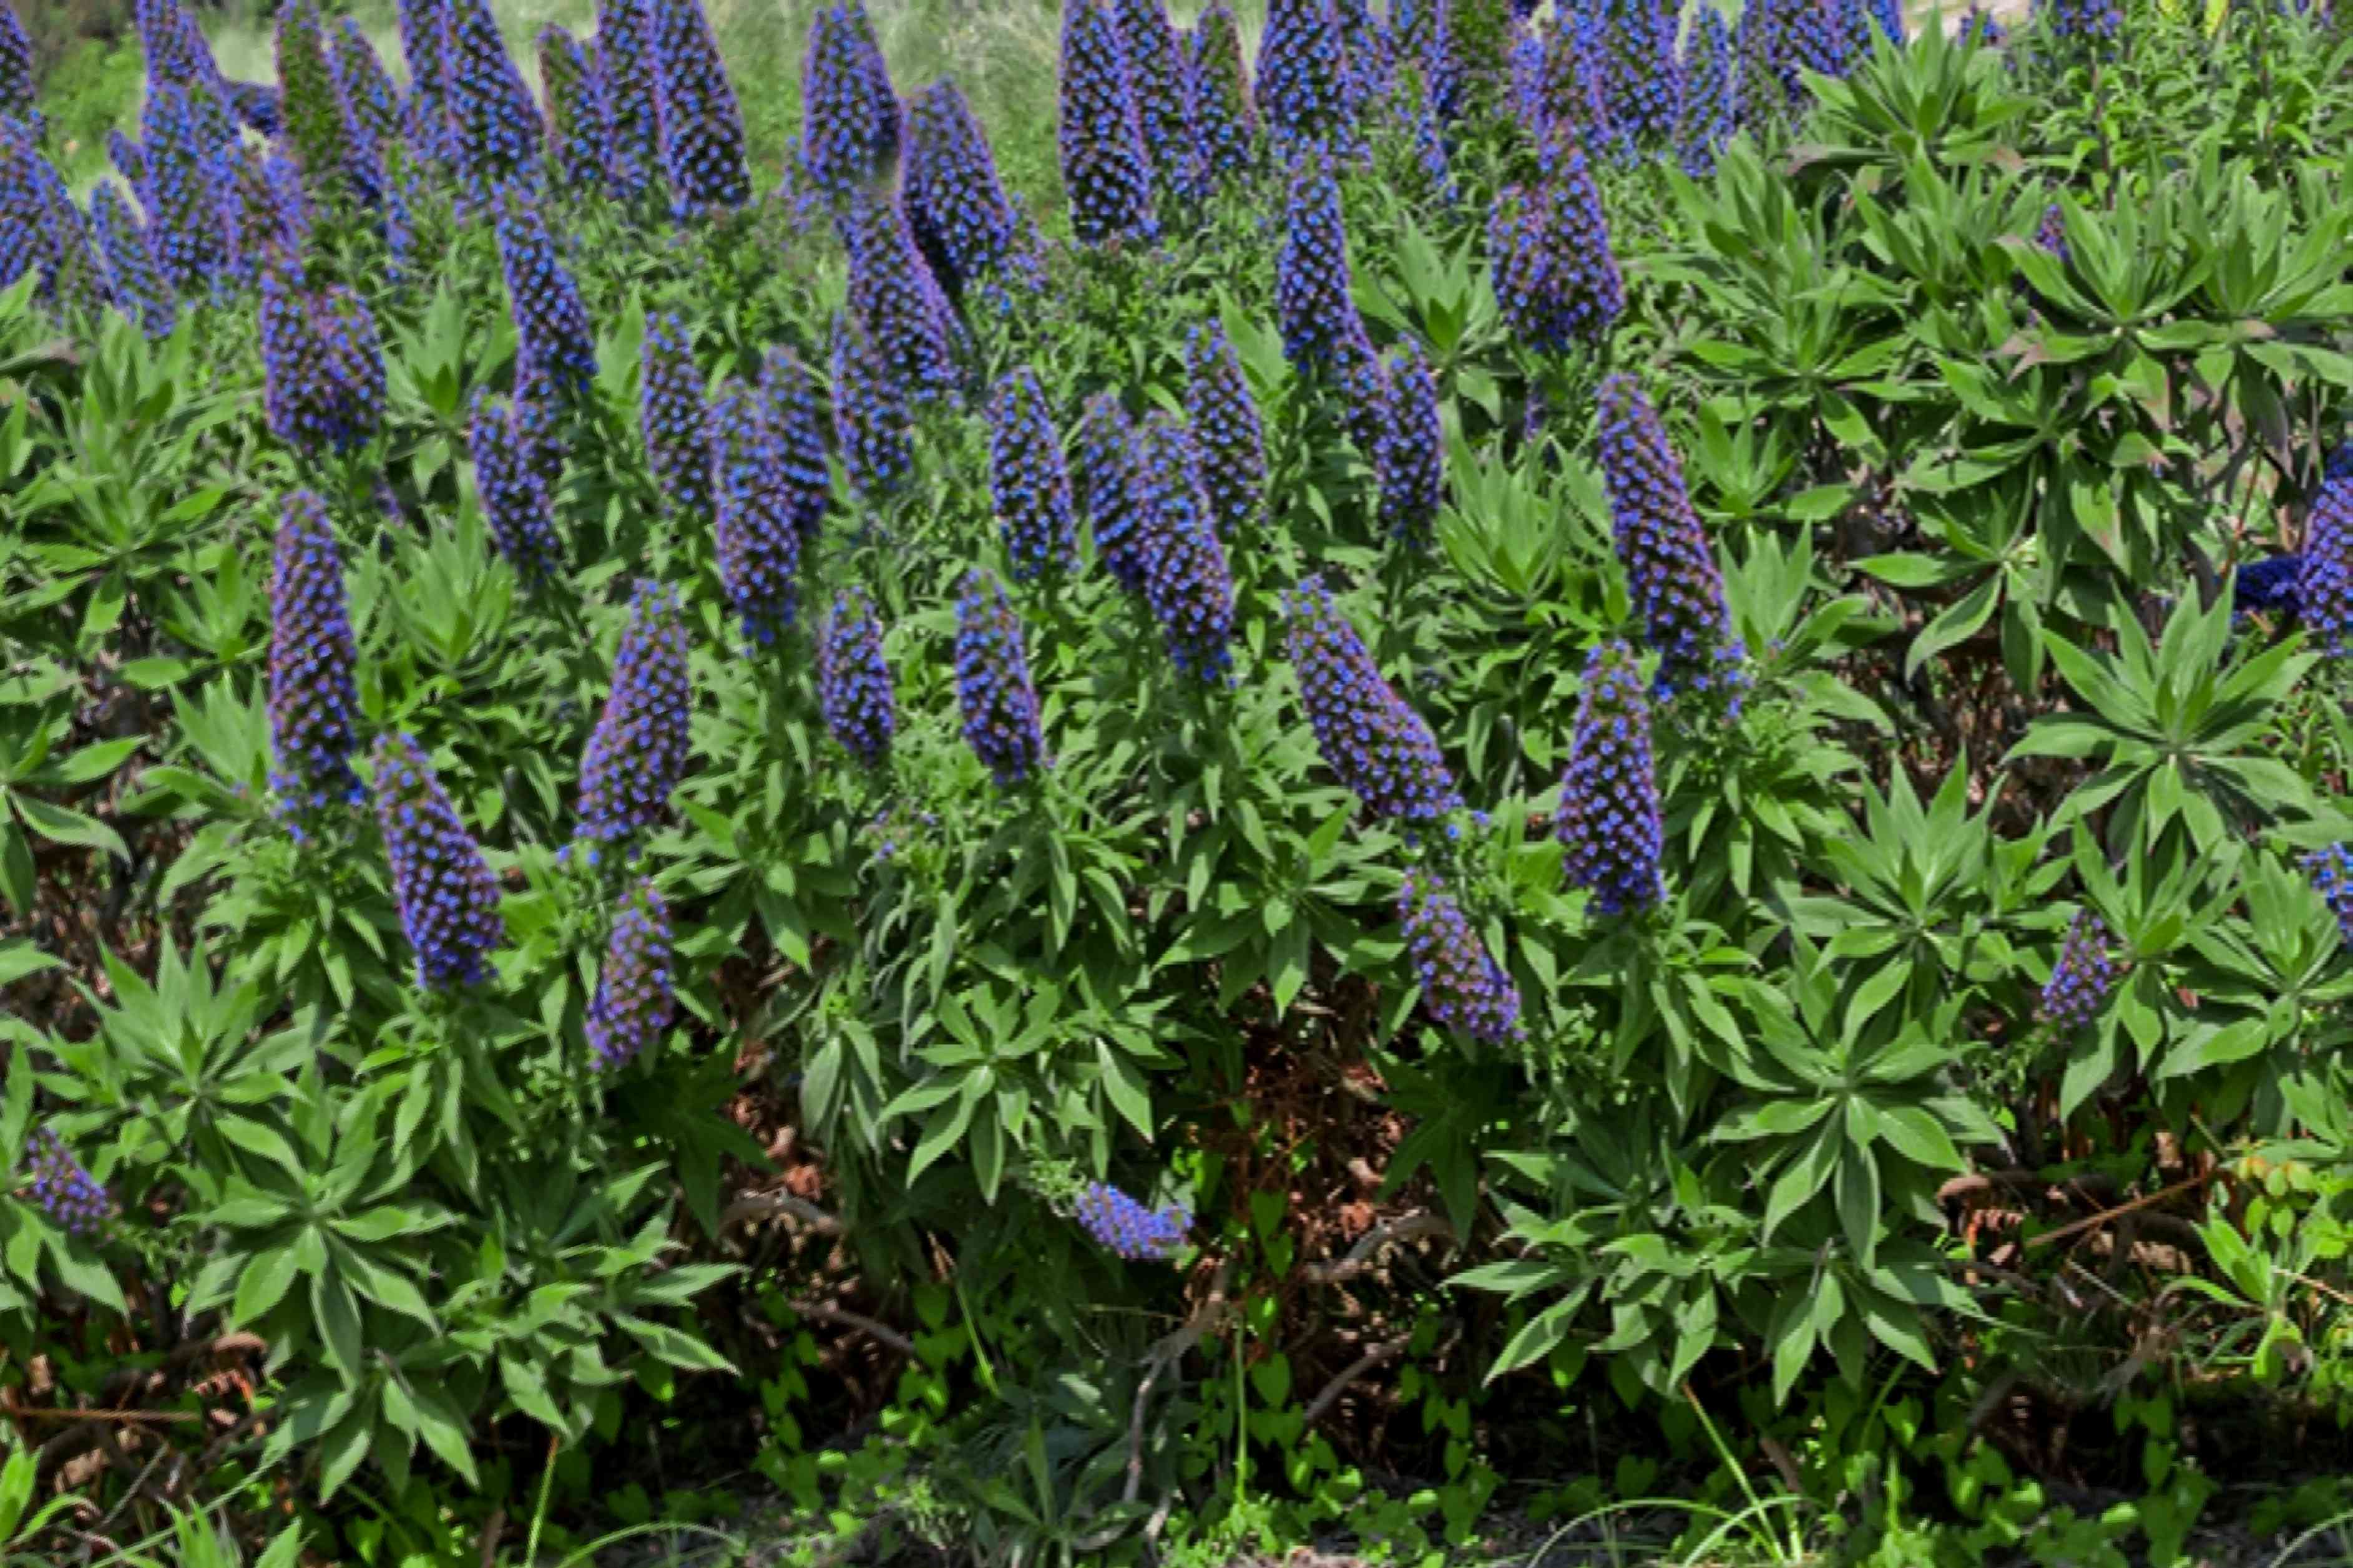 Pride of Madeira shrub with dark purple cone-shaped flower panicles in between spiky leaves